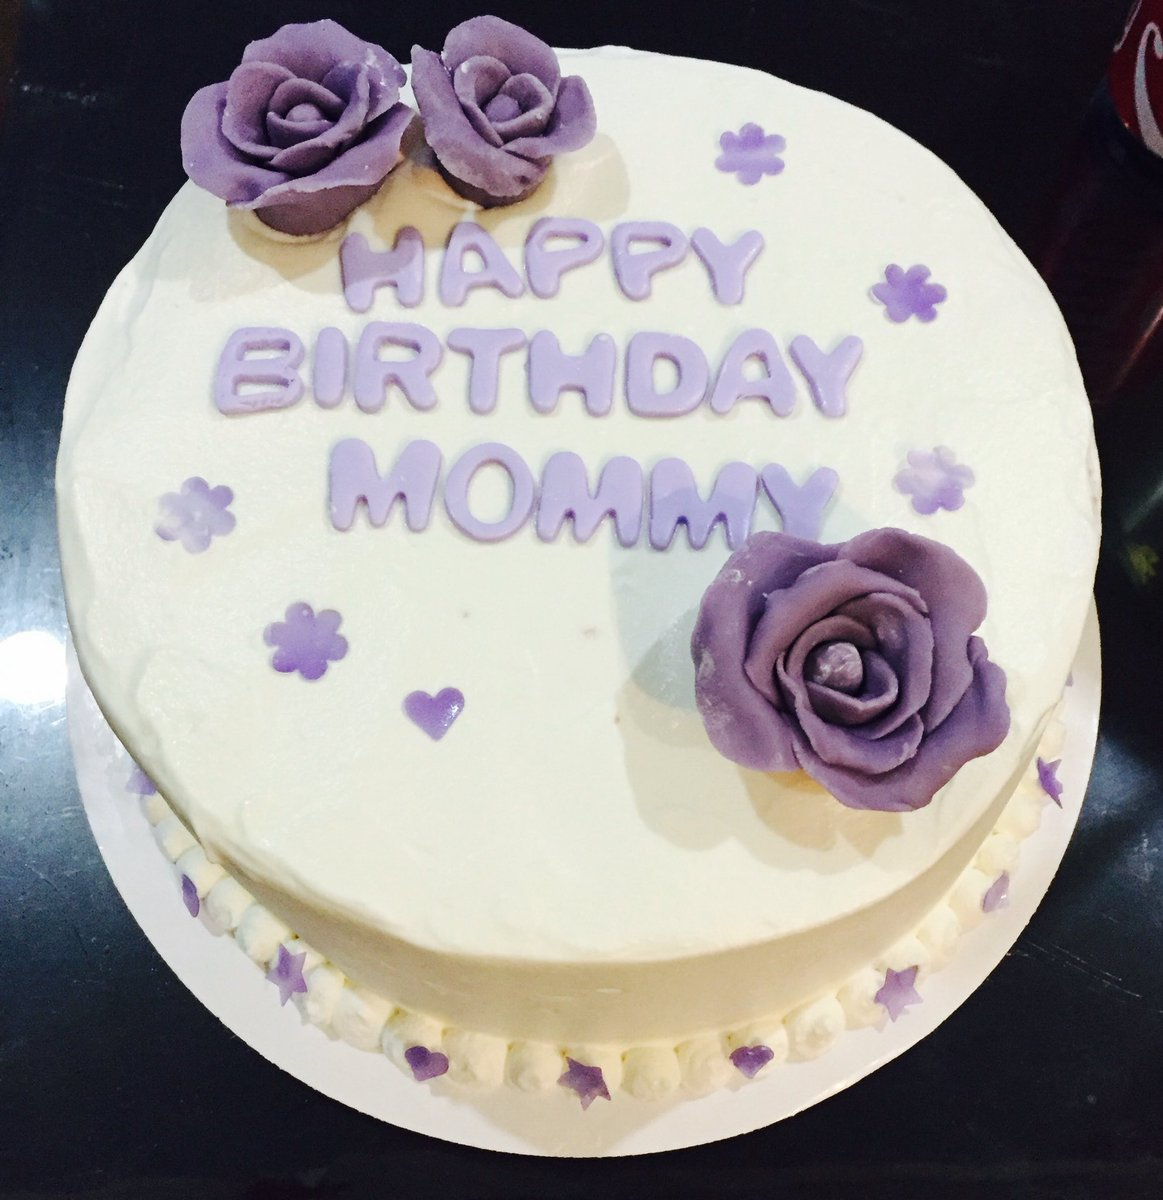 Yuki Chang On Twitter Happy Birthday Mommy I Made A Taro All